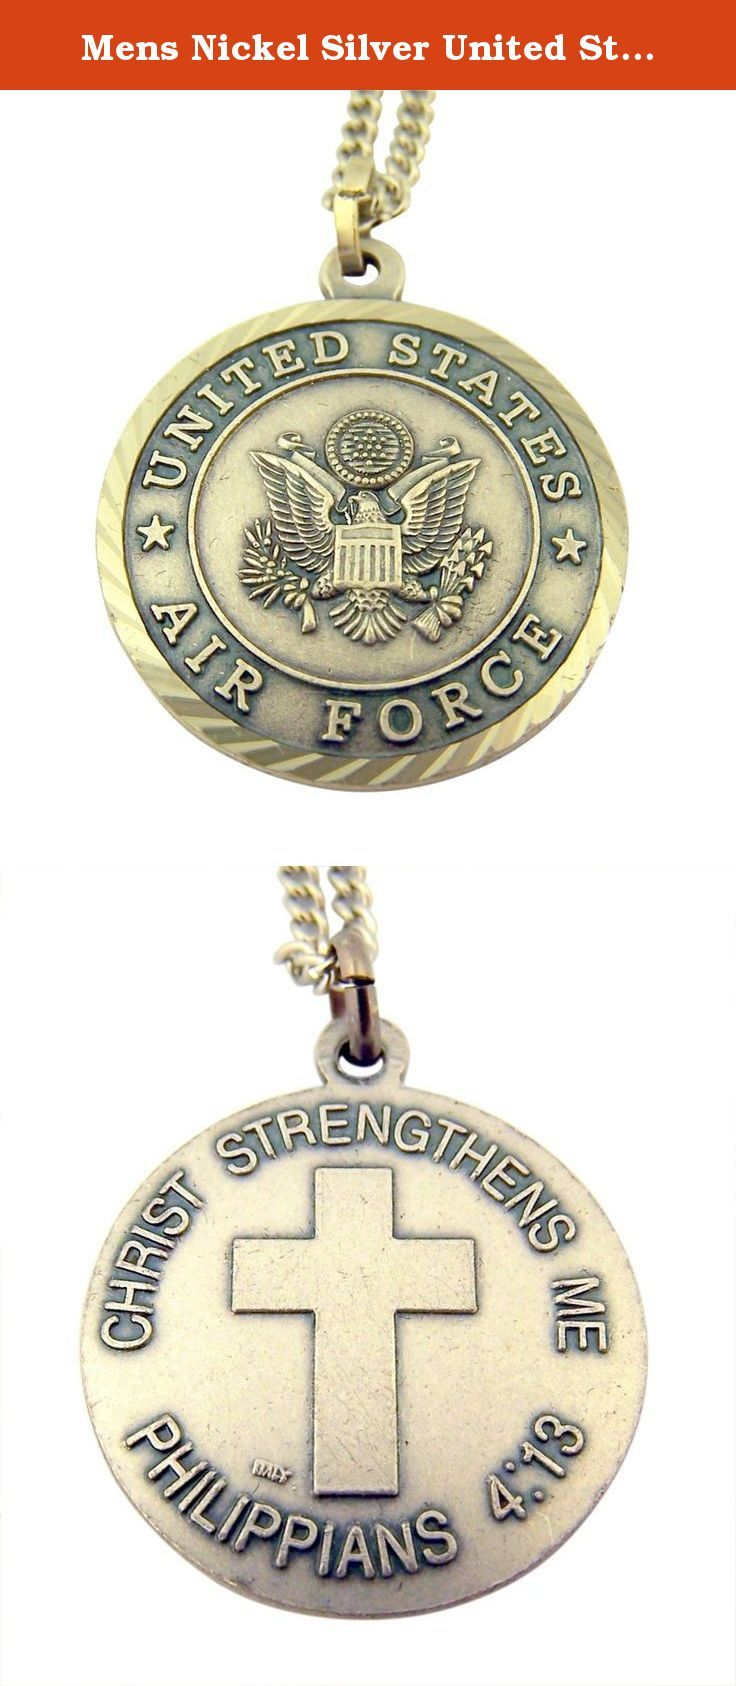 Mens Nickel Silver United States Air Force Medal with Christ Cross Back, 1 Inch. Nickel silver United States Military medal pendant on stainless steel chain. Back features Christ Strengthens Me Philippians 4:13 back. Packaged in jewelry gift box.